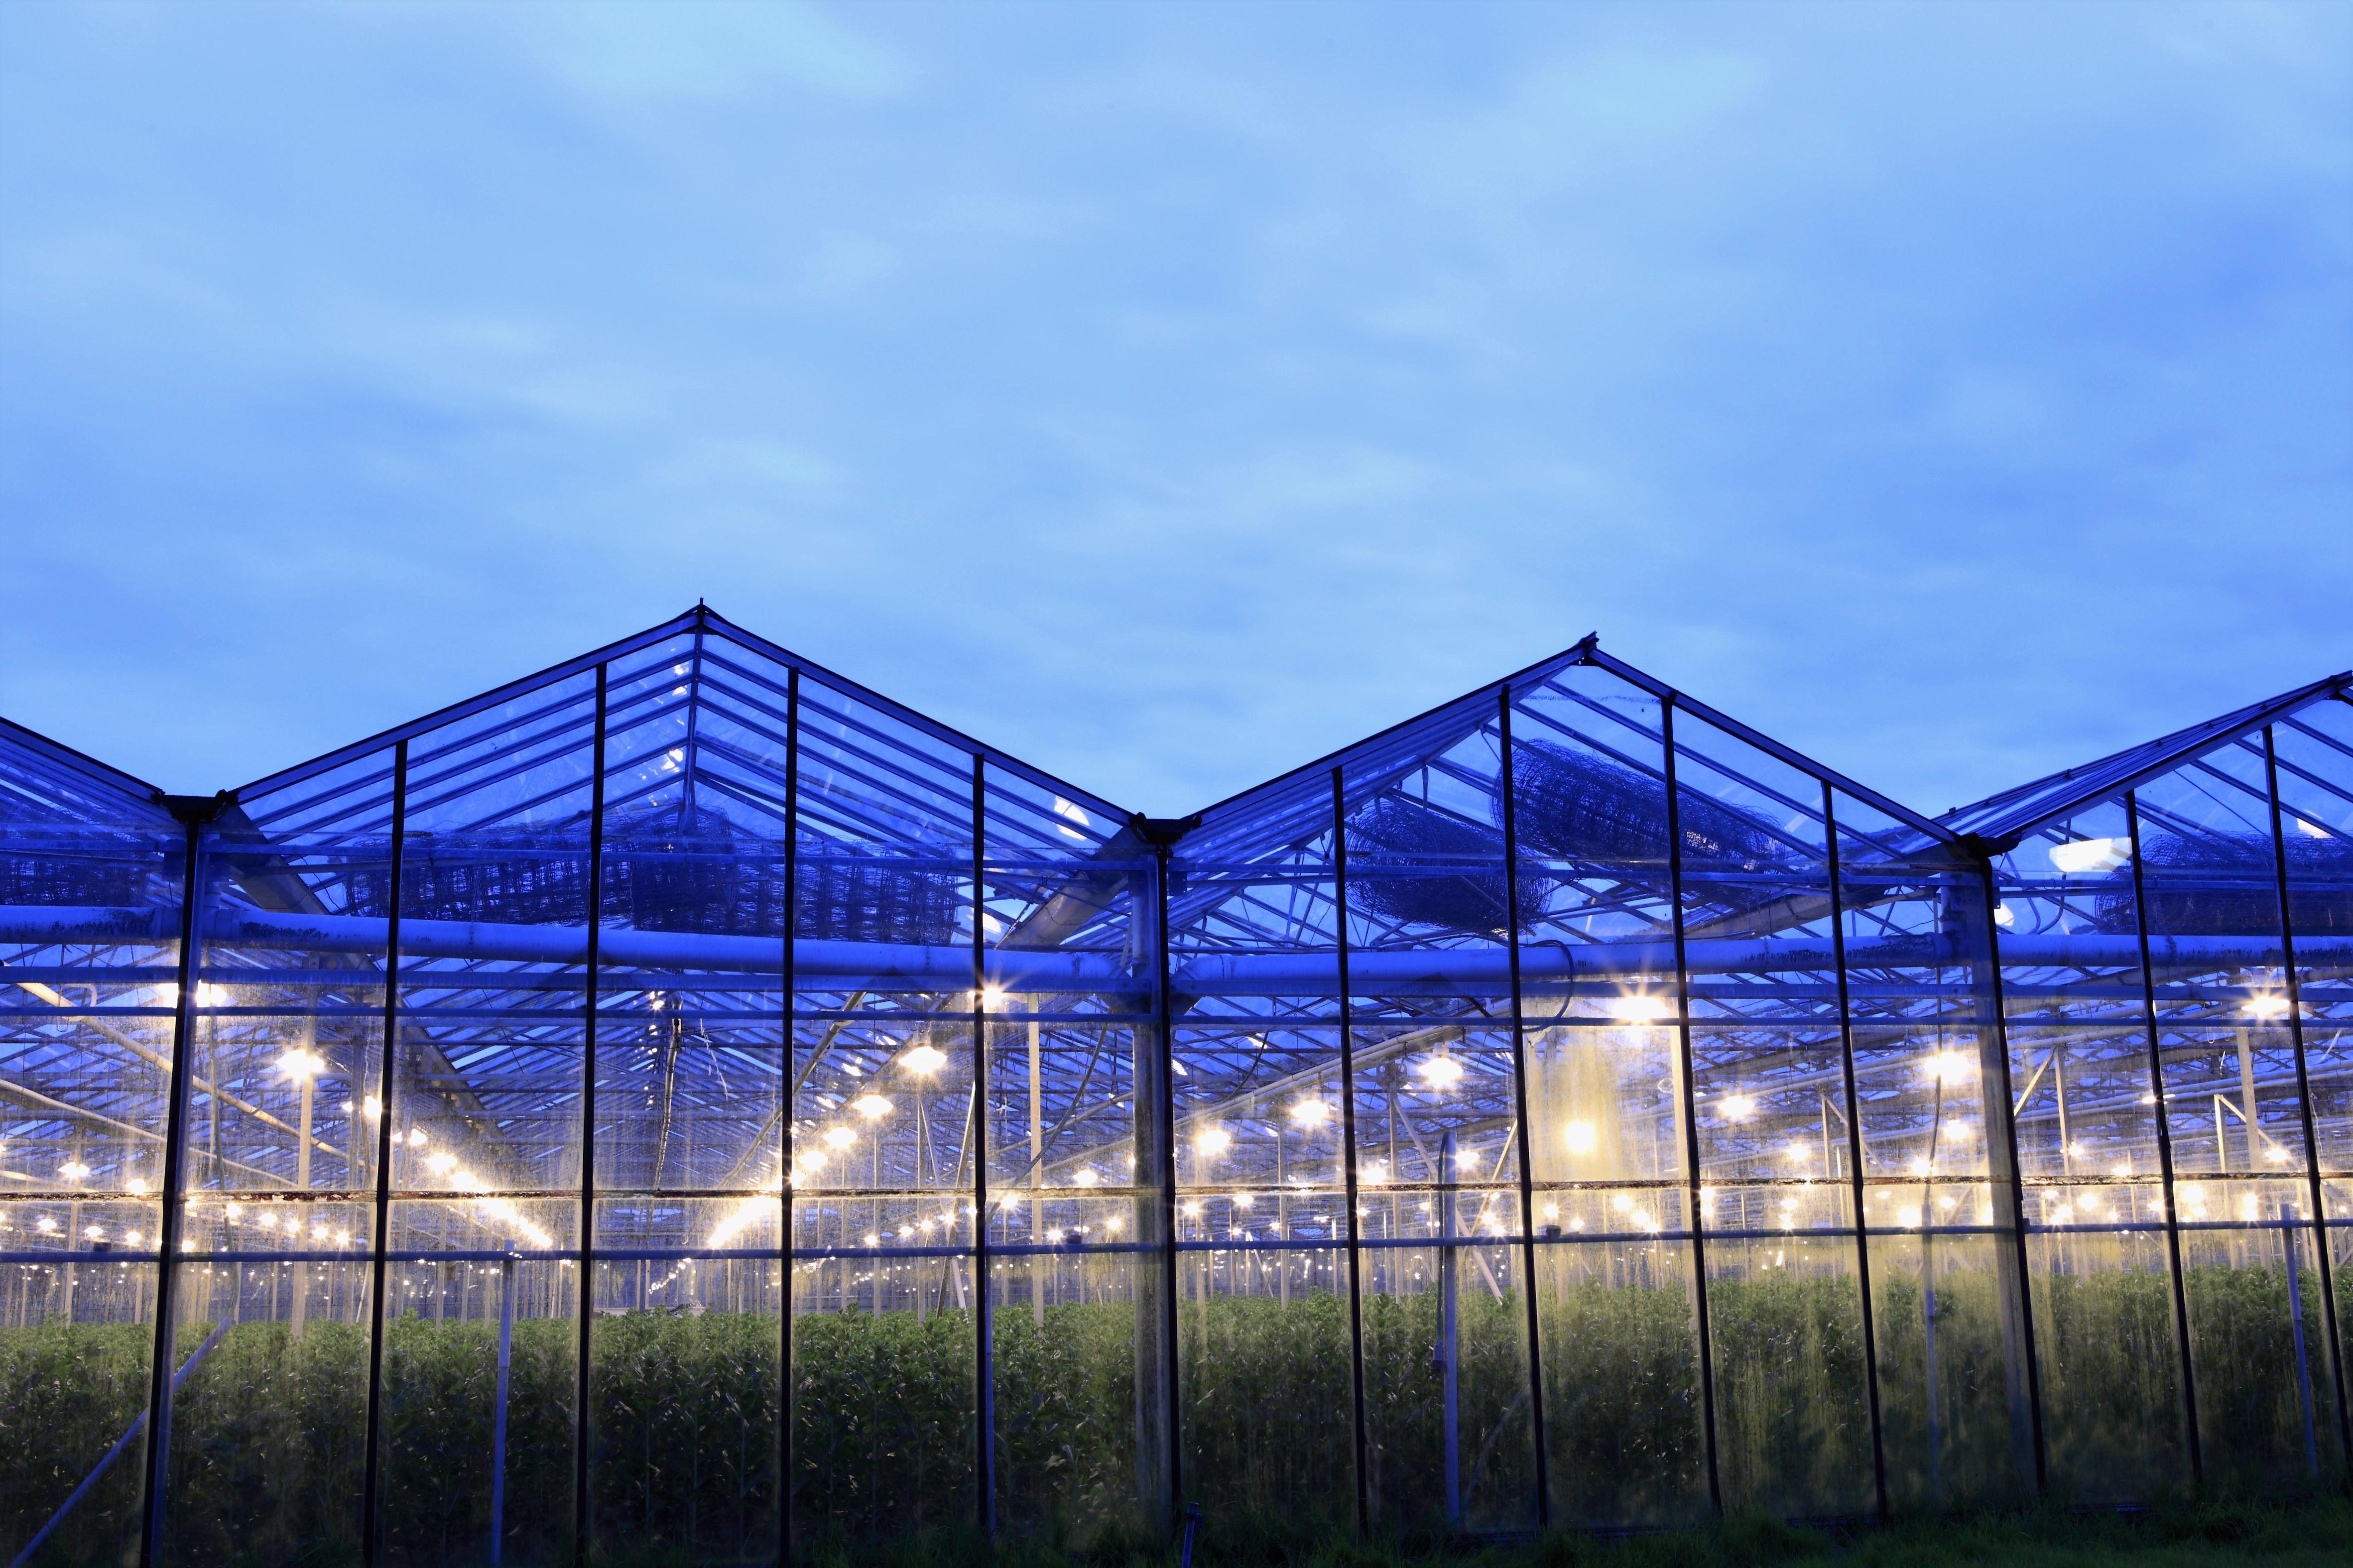 LED Lighting in a Horticulture Greenhouse